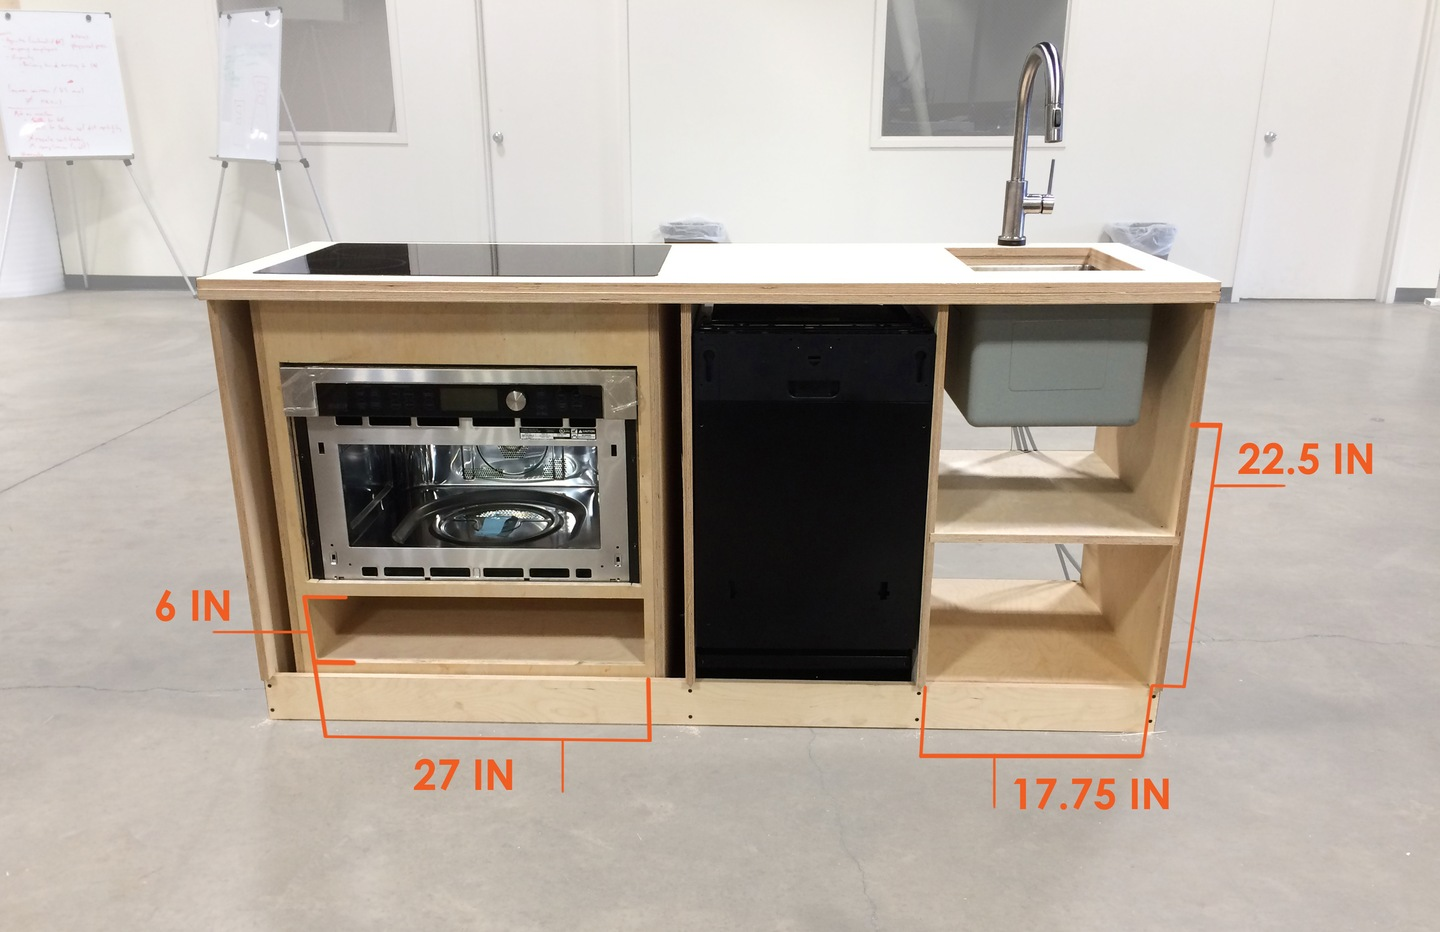 the micro kitchen